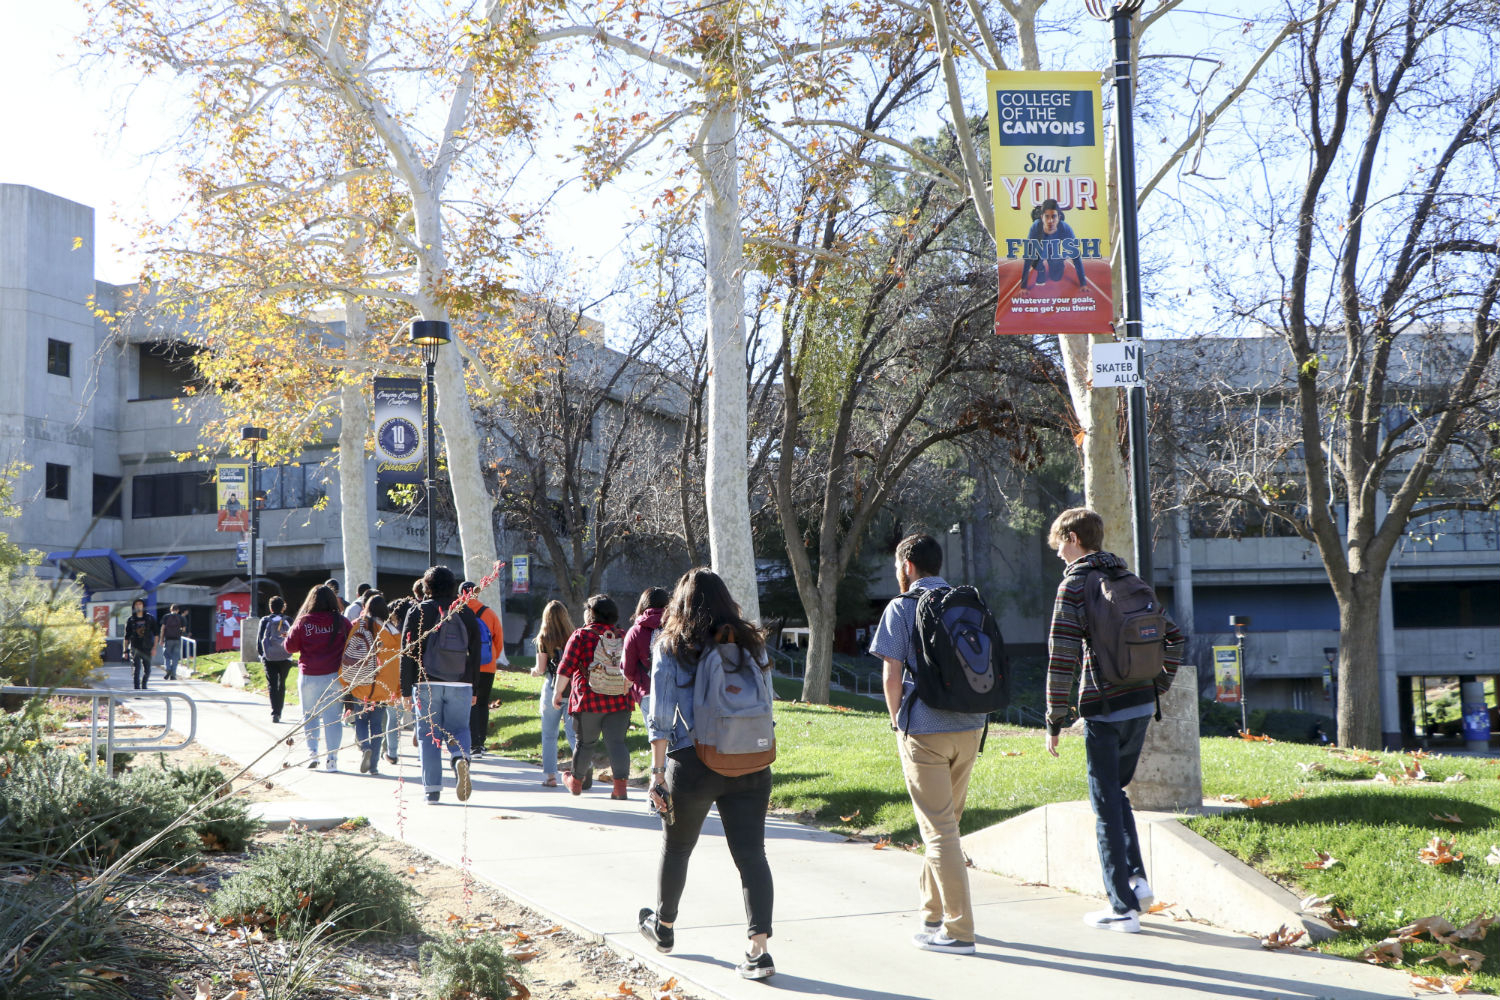 Scv News | Coc Adds Short-Term Classes To Spring 2019 with regard to When Does The Spring Semester Start At College Of The Canyons